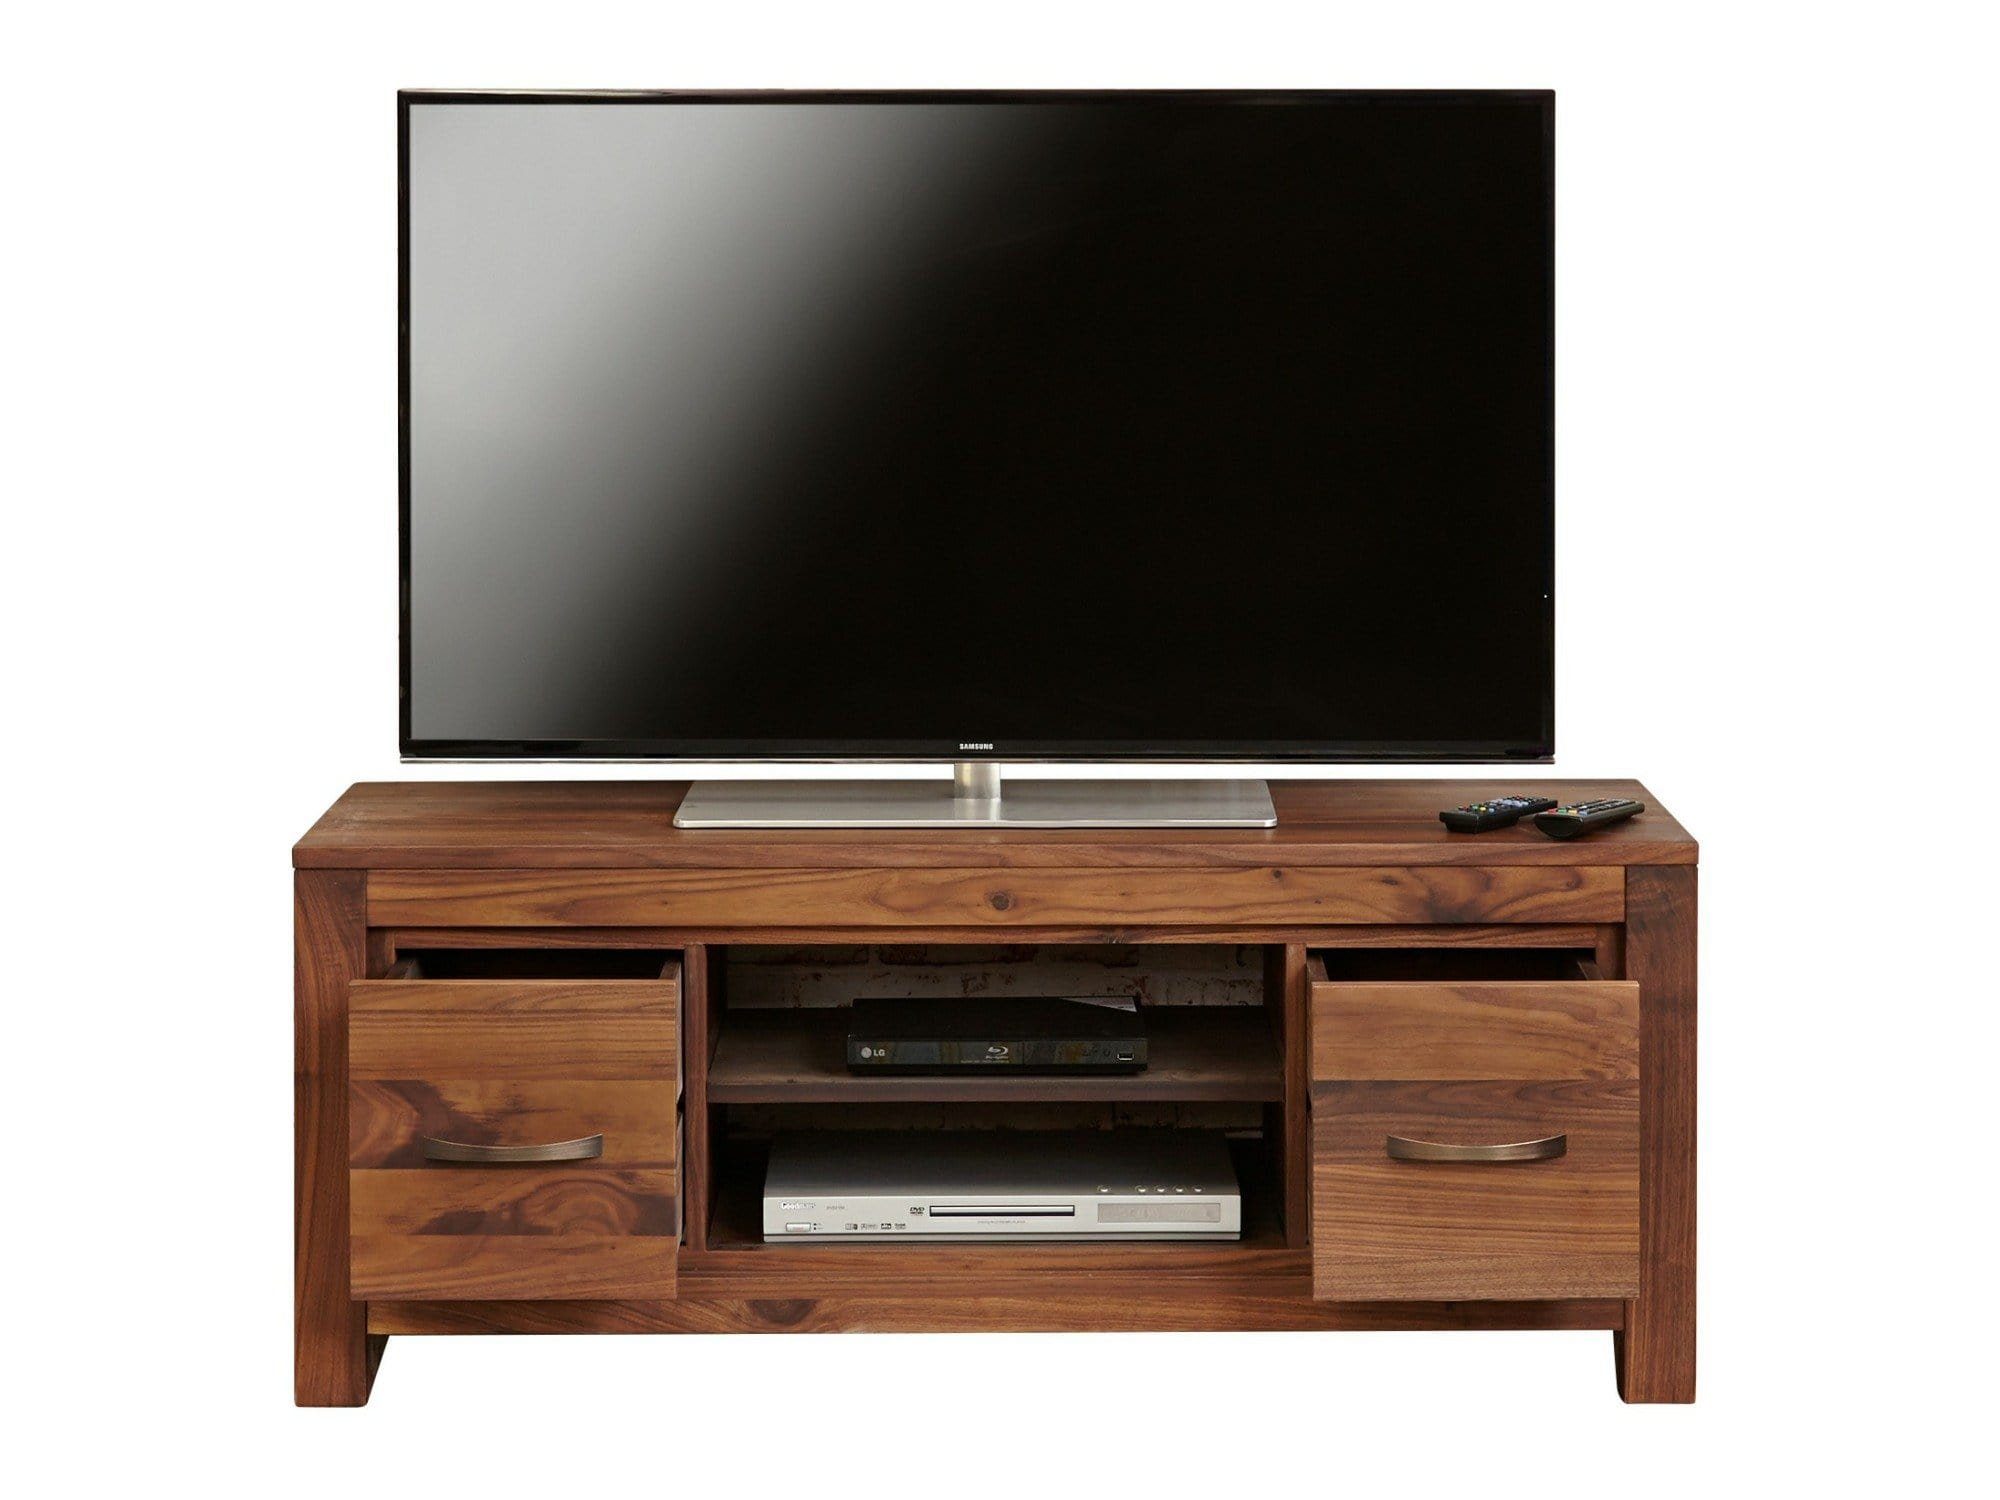 Orsina walnut TV stand with two drawers and two shelves for media boxes and DVD players